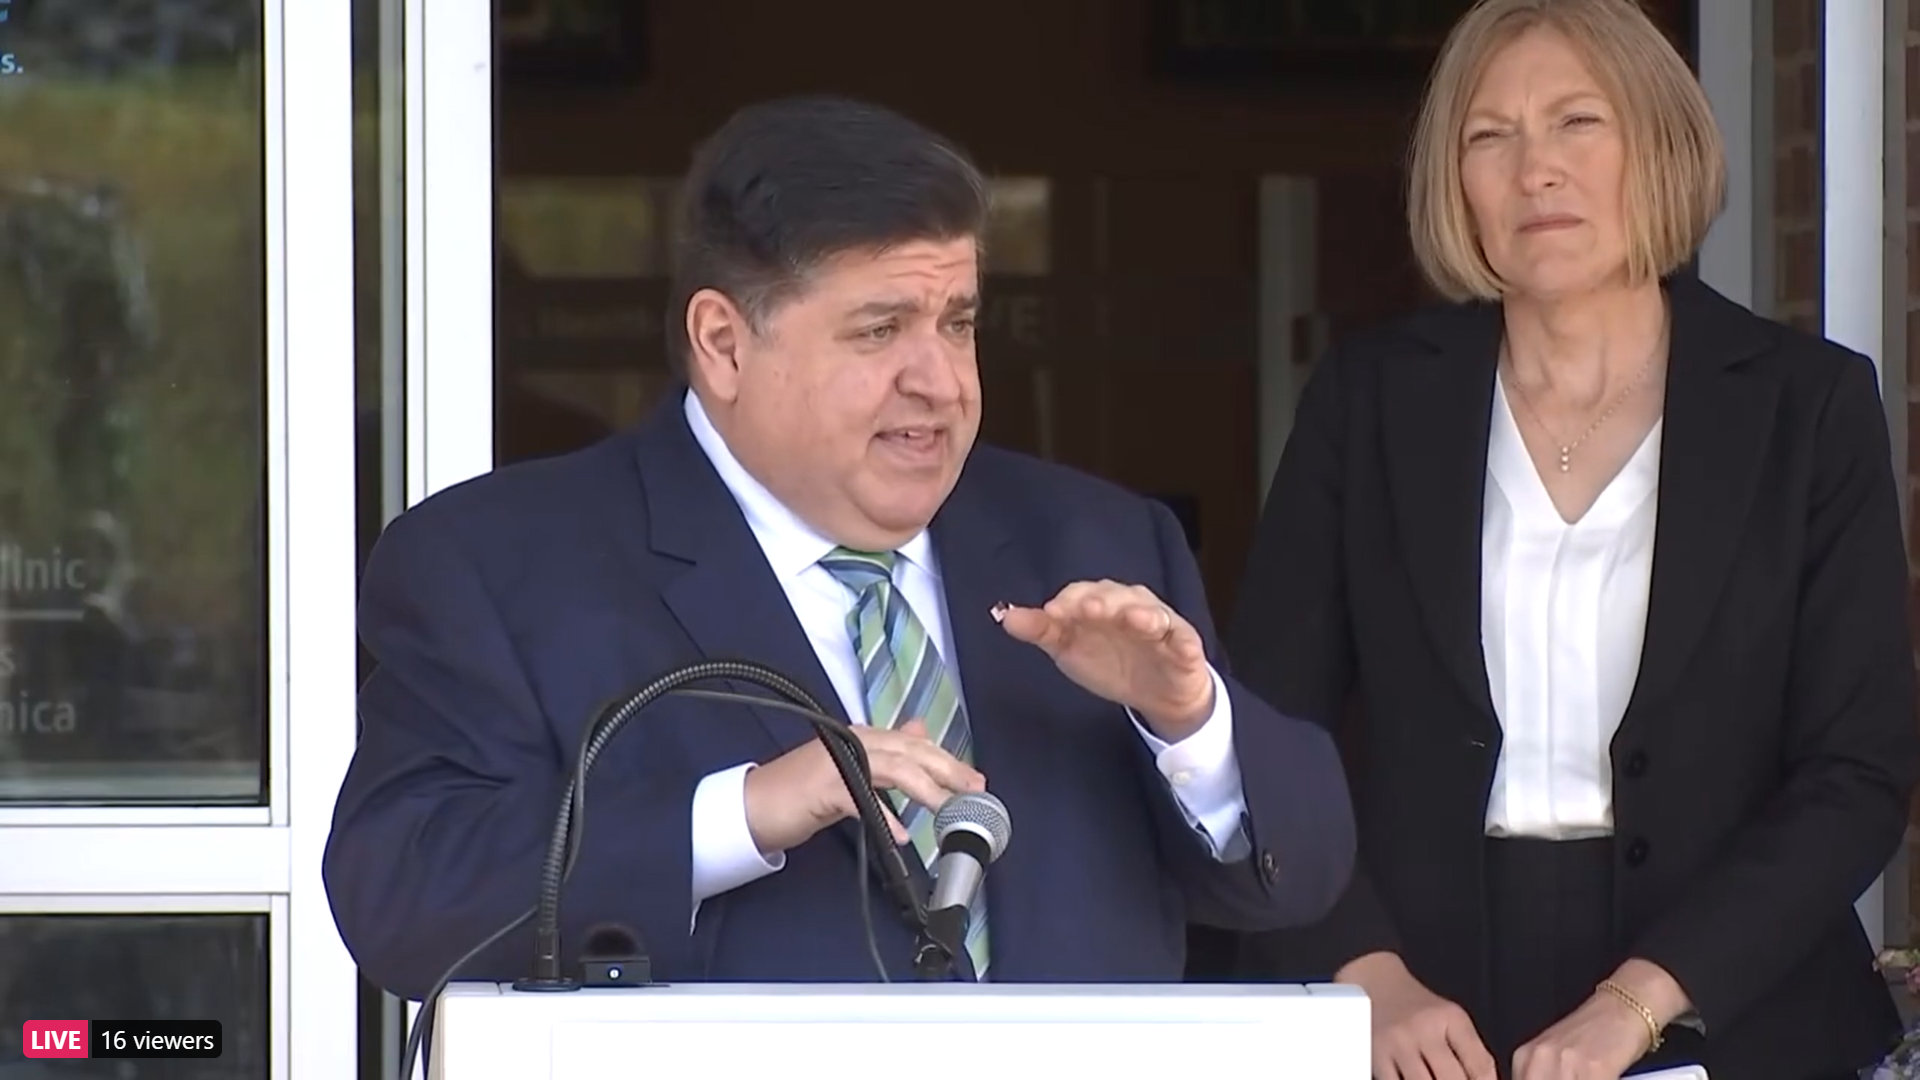 Pritzker deploying Pandemic Health Navigators to get more people vaccinated